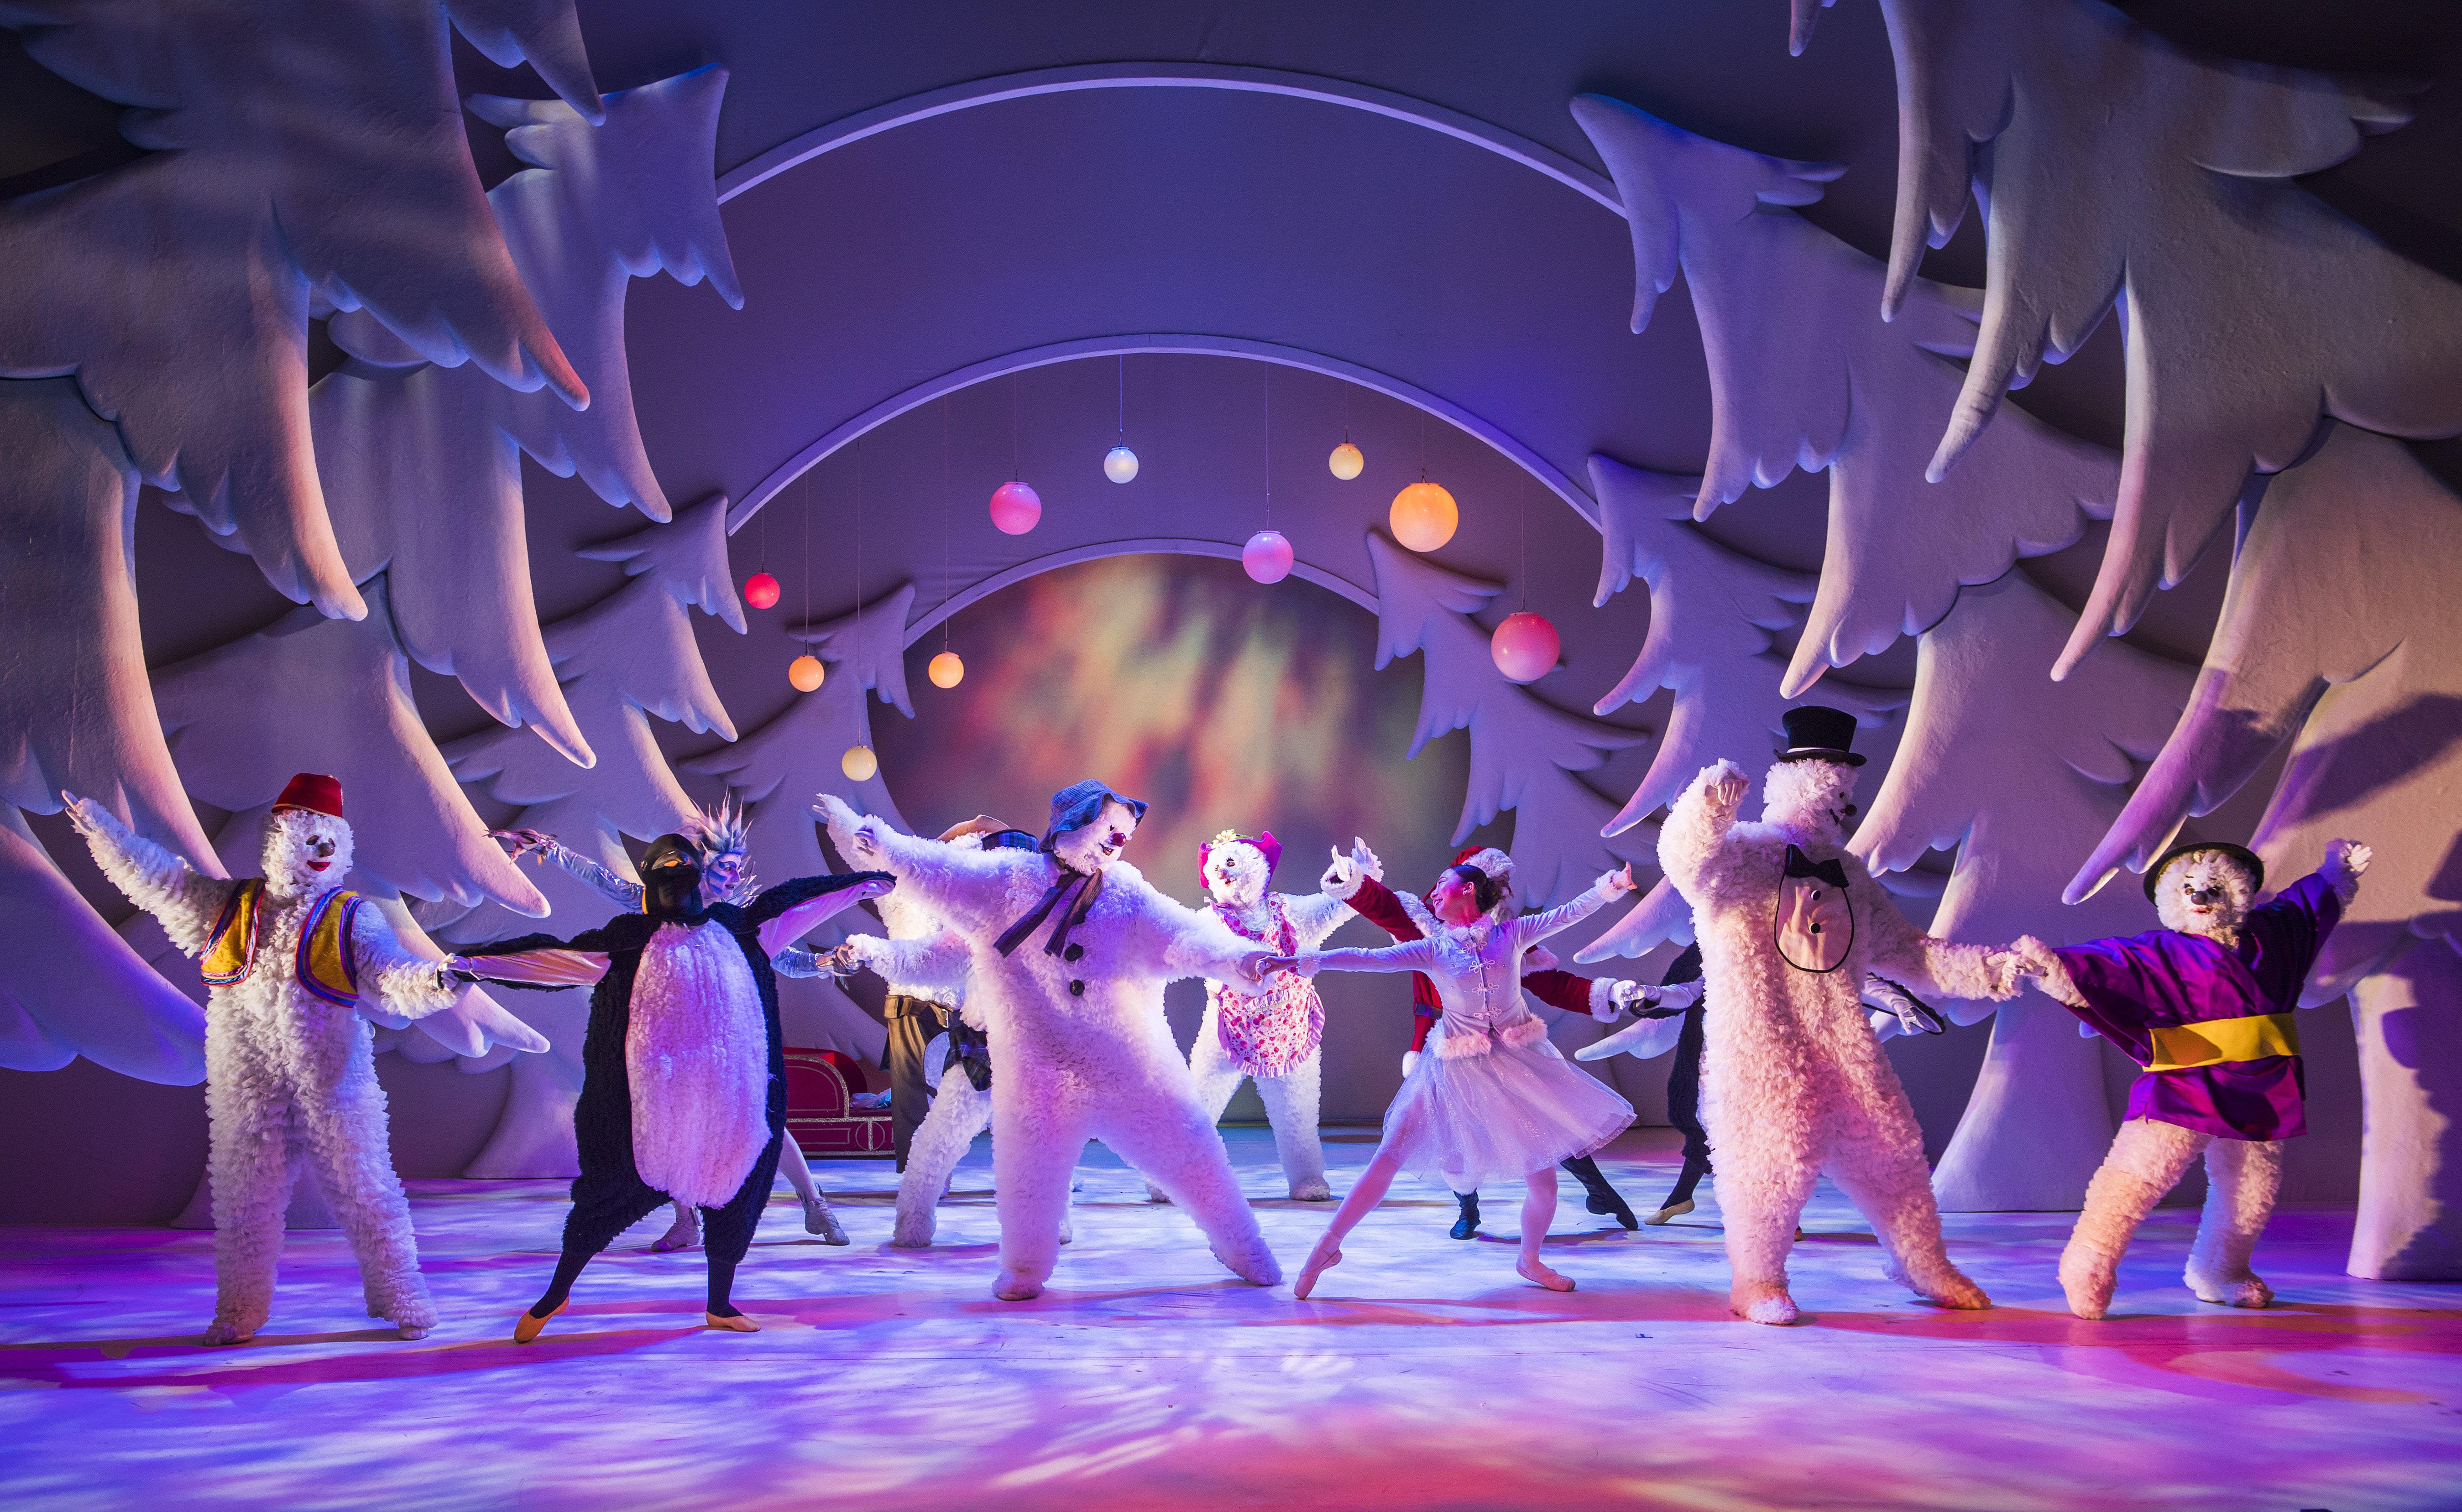 Dancer James Leece takes the title role in The Snowman stage show, dancing in a winter wonderland with a colourful cast of characters